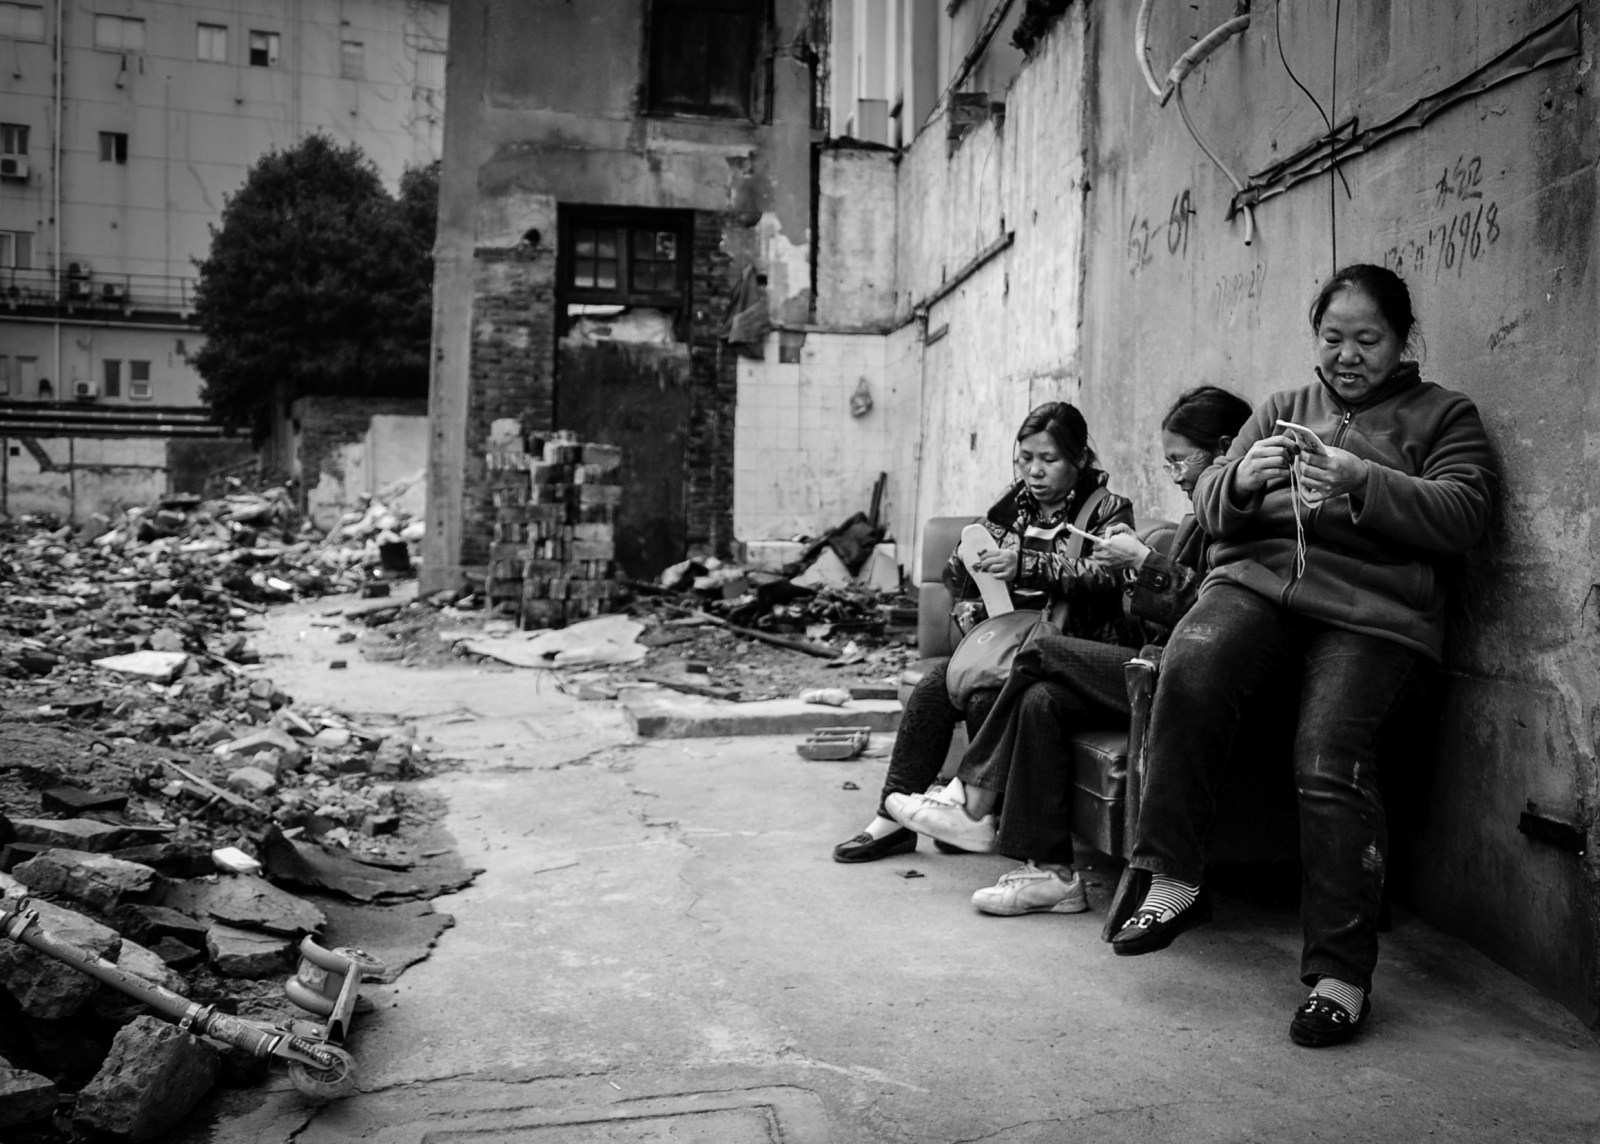 Communities live on, as these women continue their social sewing, piled much like the rubble atop a straggling sofa.